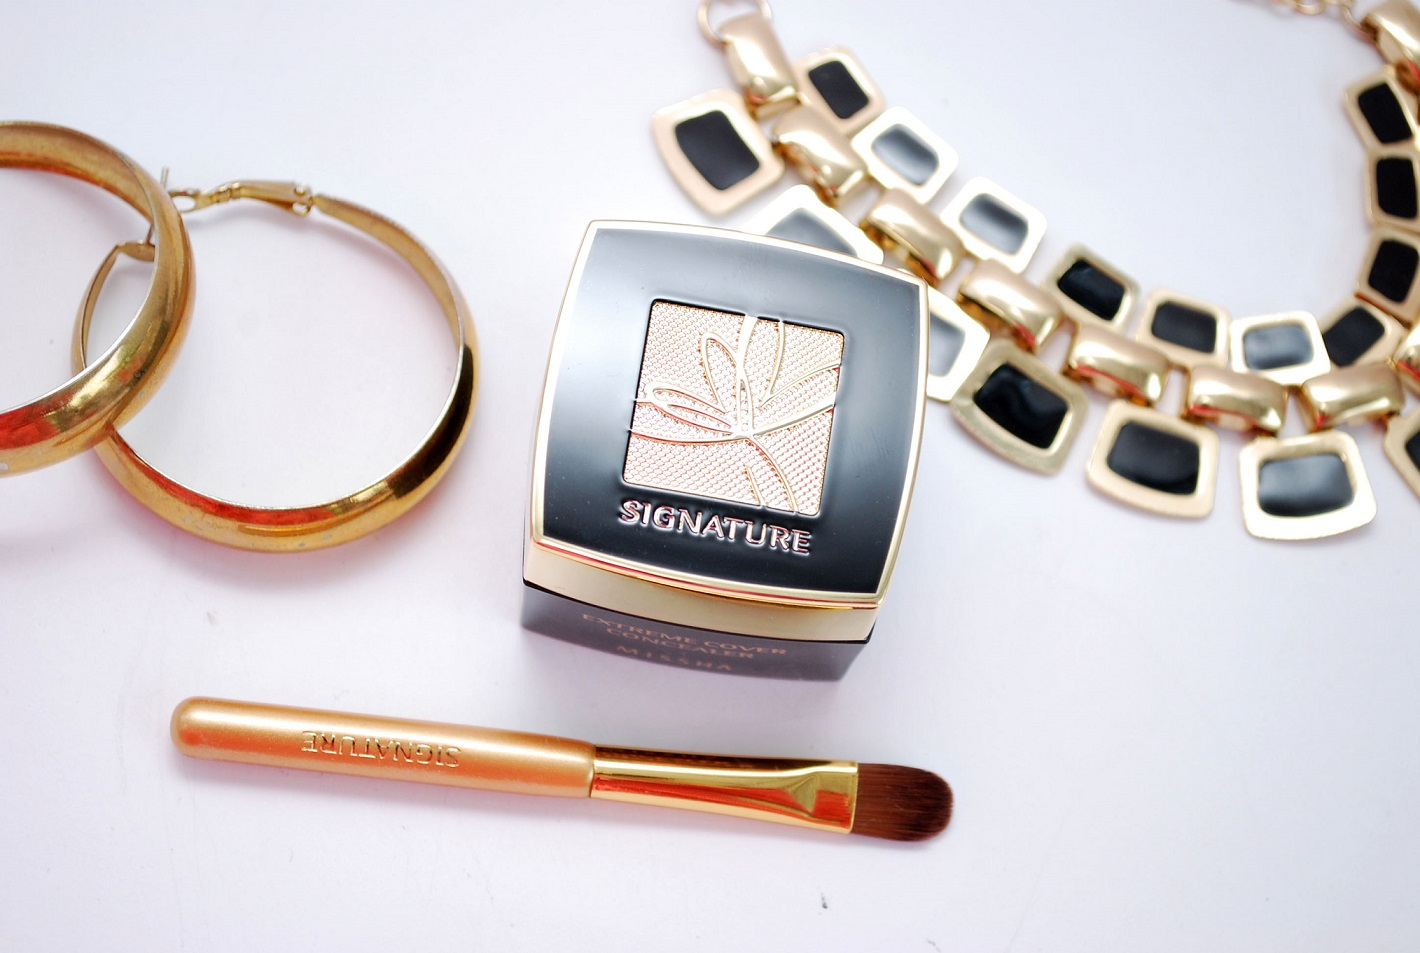 review Missha Signature Extreme Cover Concealer 21 Light Beige